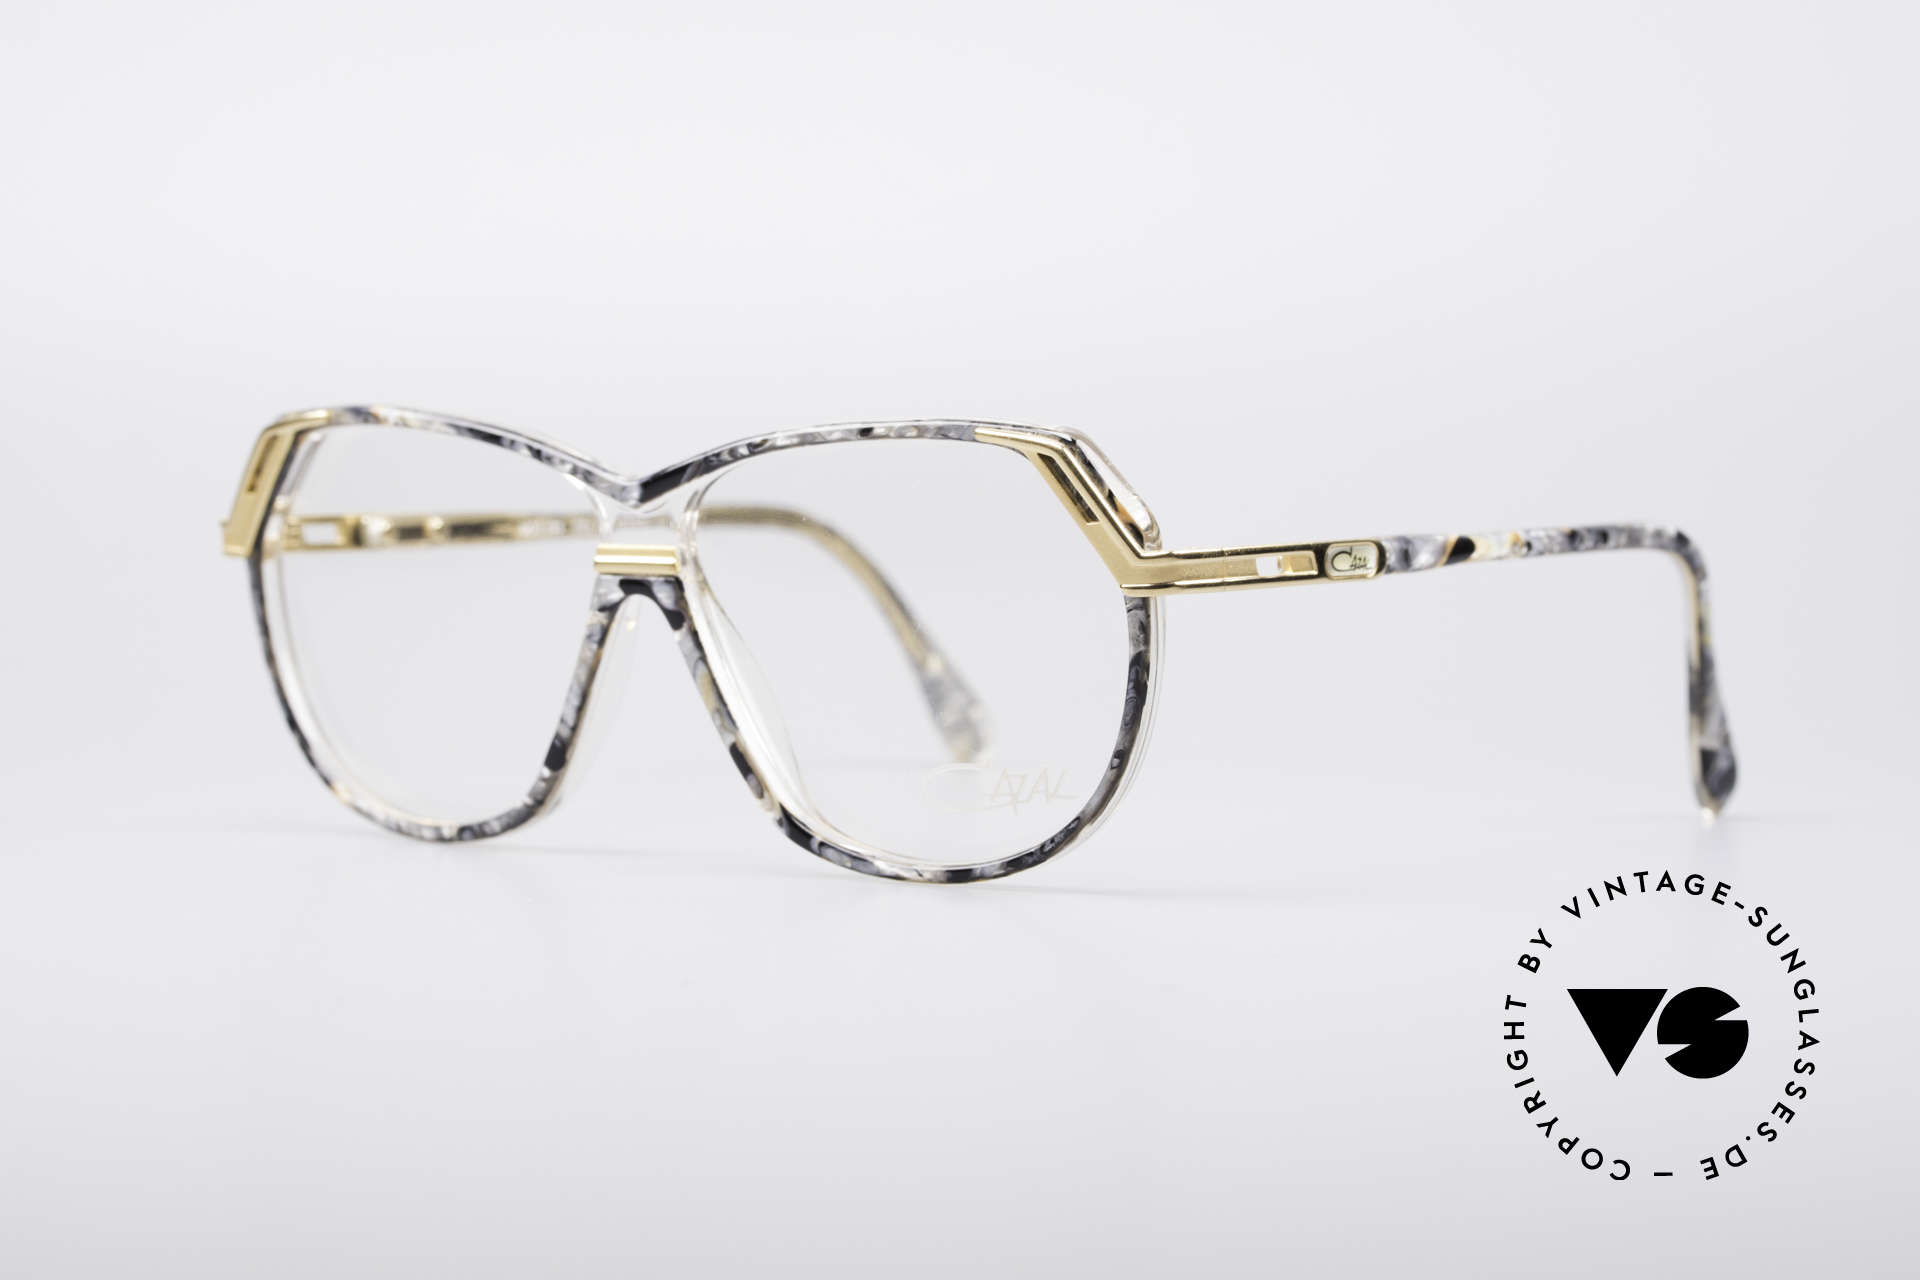 Cazal 339 No Retro 90's Vintage Specs, truly unique and fancy - a real 'eye-catcher', Made for Women